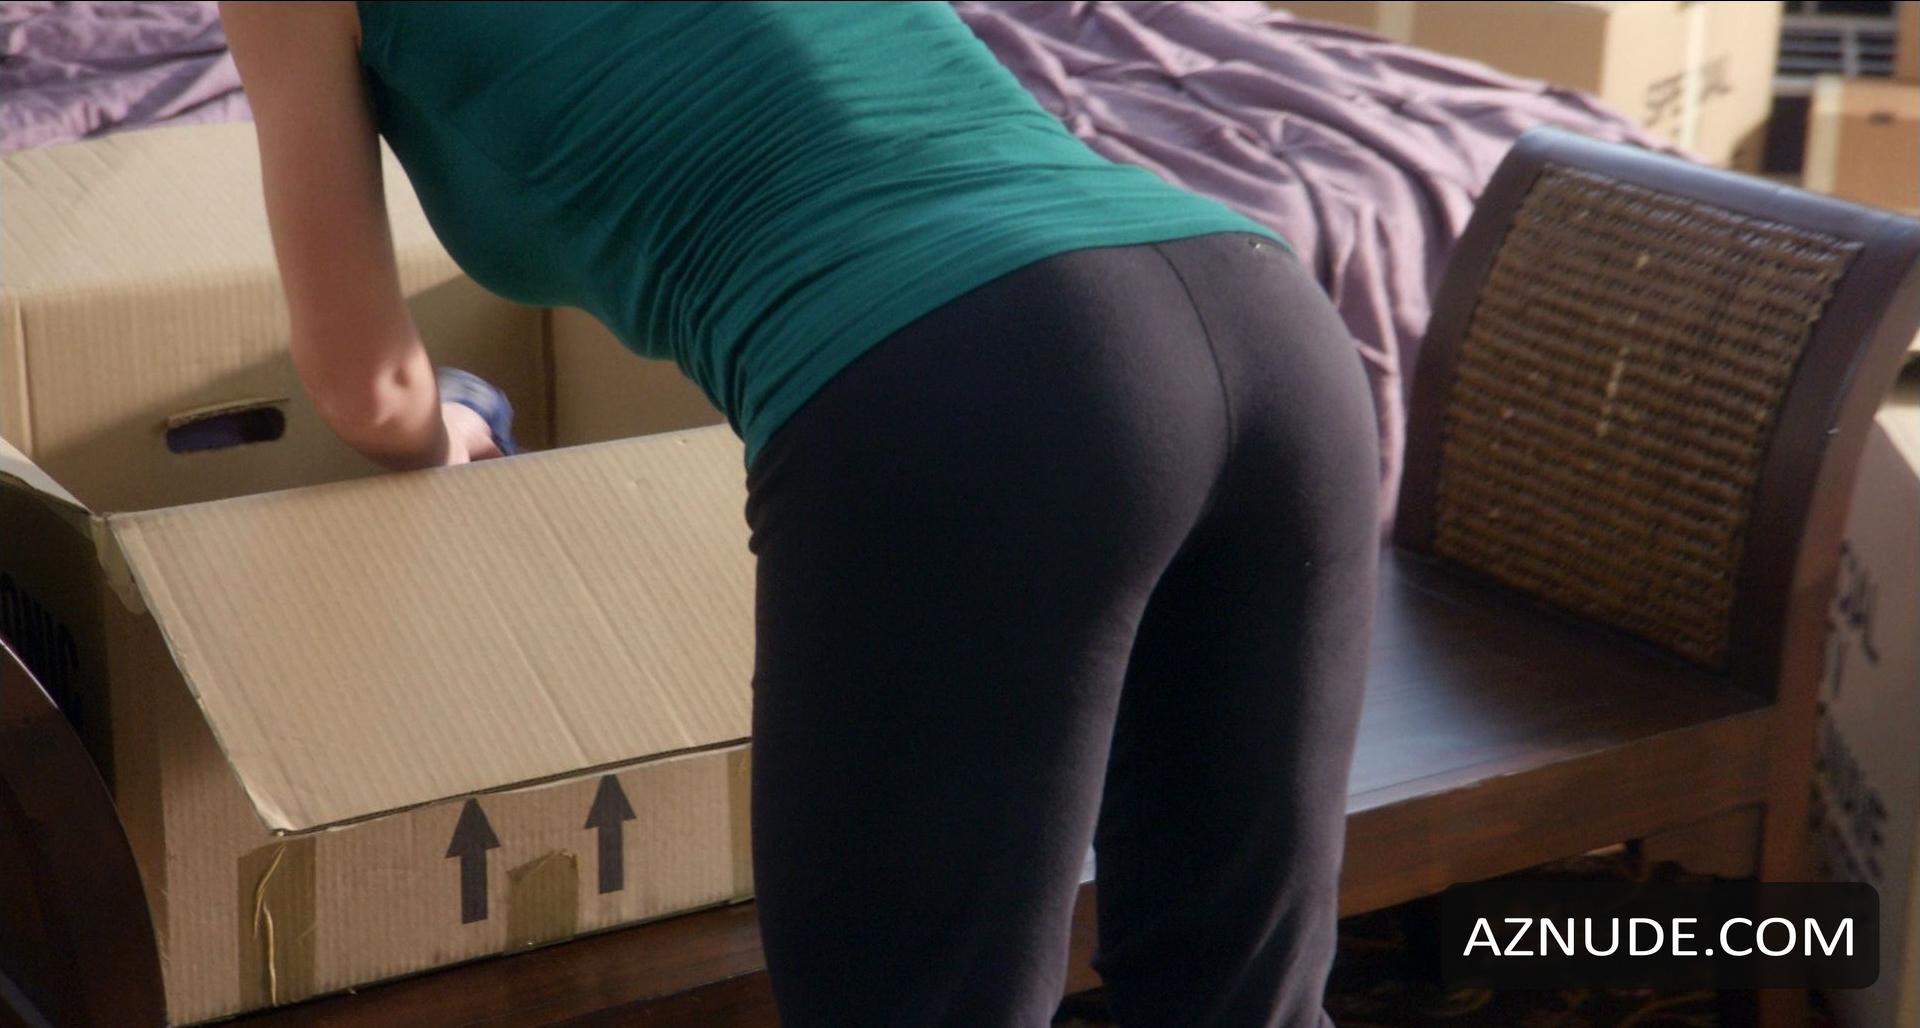 Browse Celebrity Yoga Pants Images  Page 1  AZNude